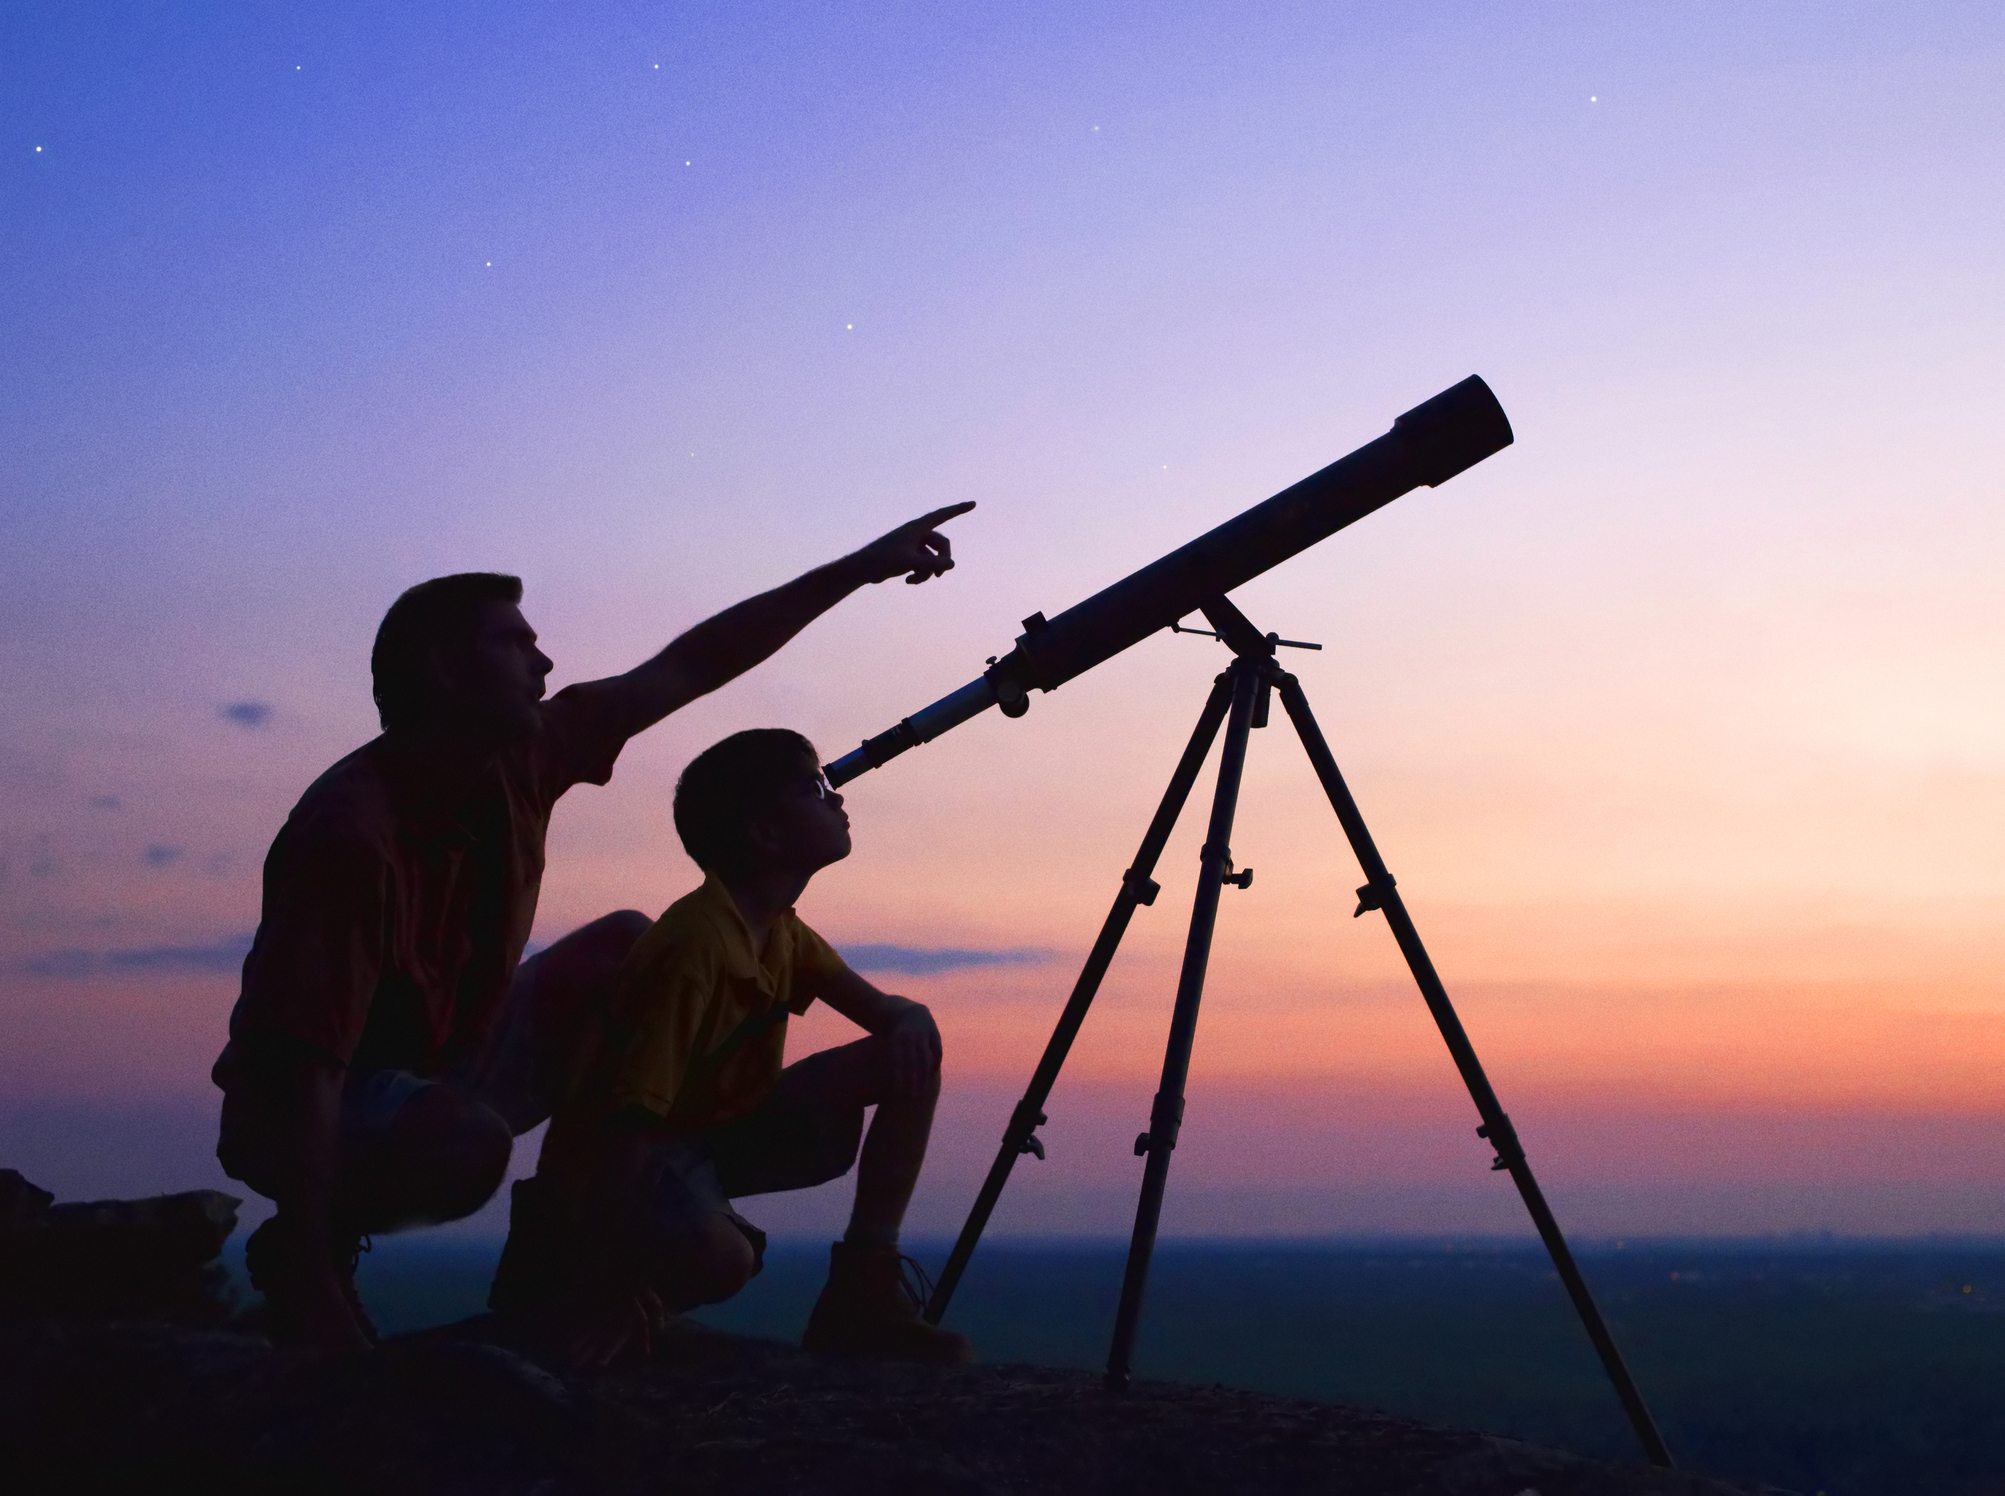 Father & Son at Telescope